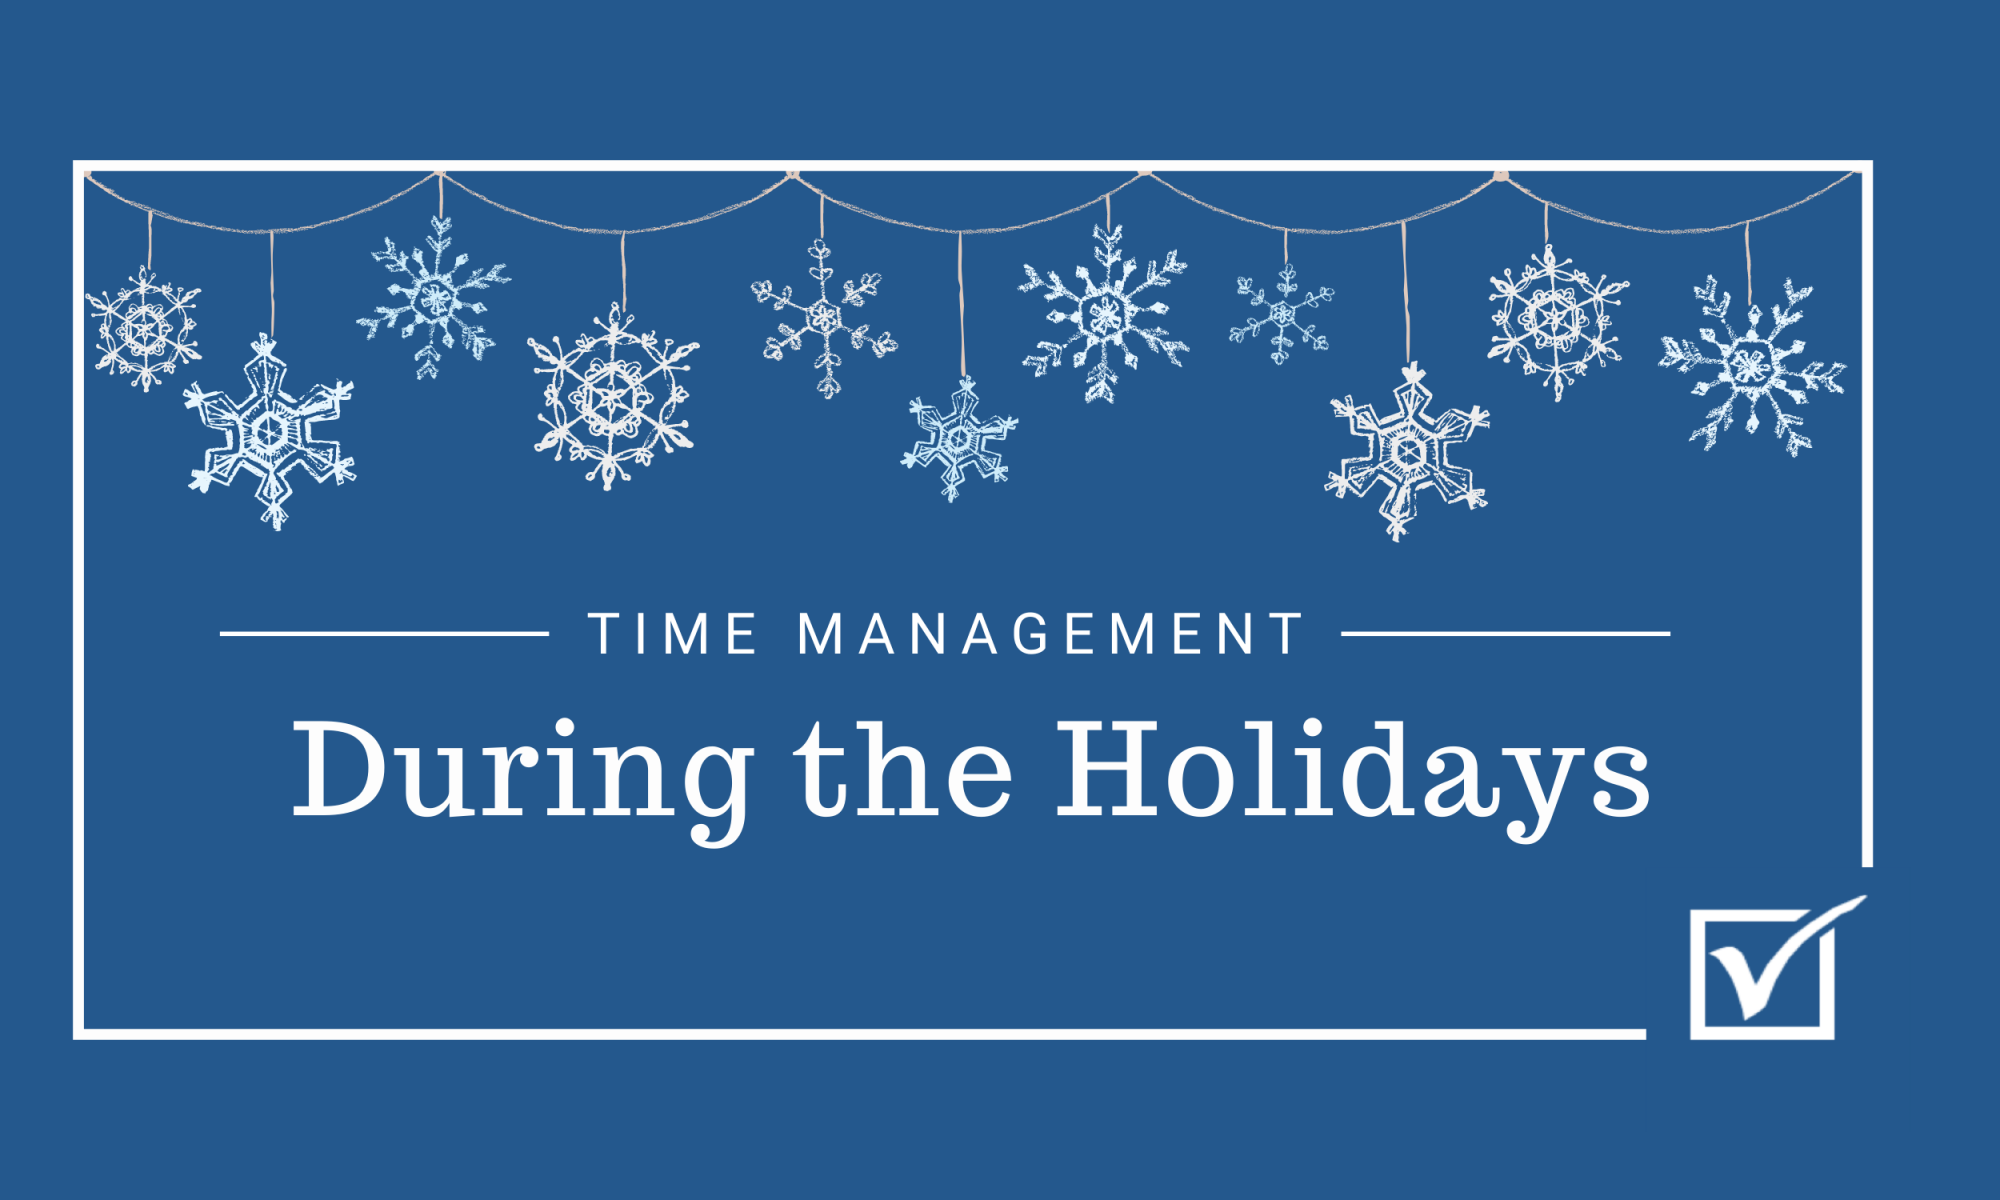 Time Management During the Holidays